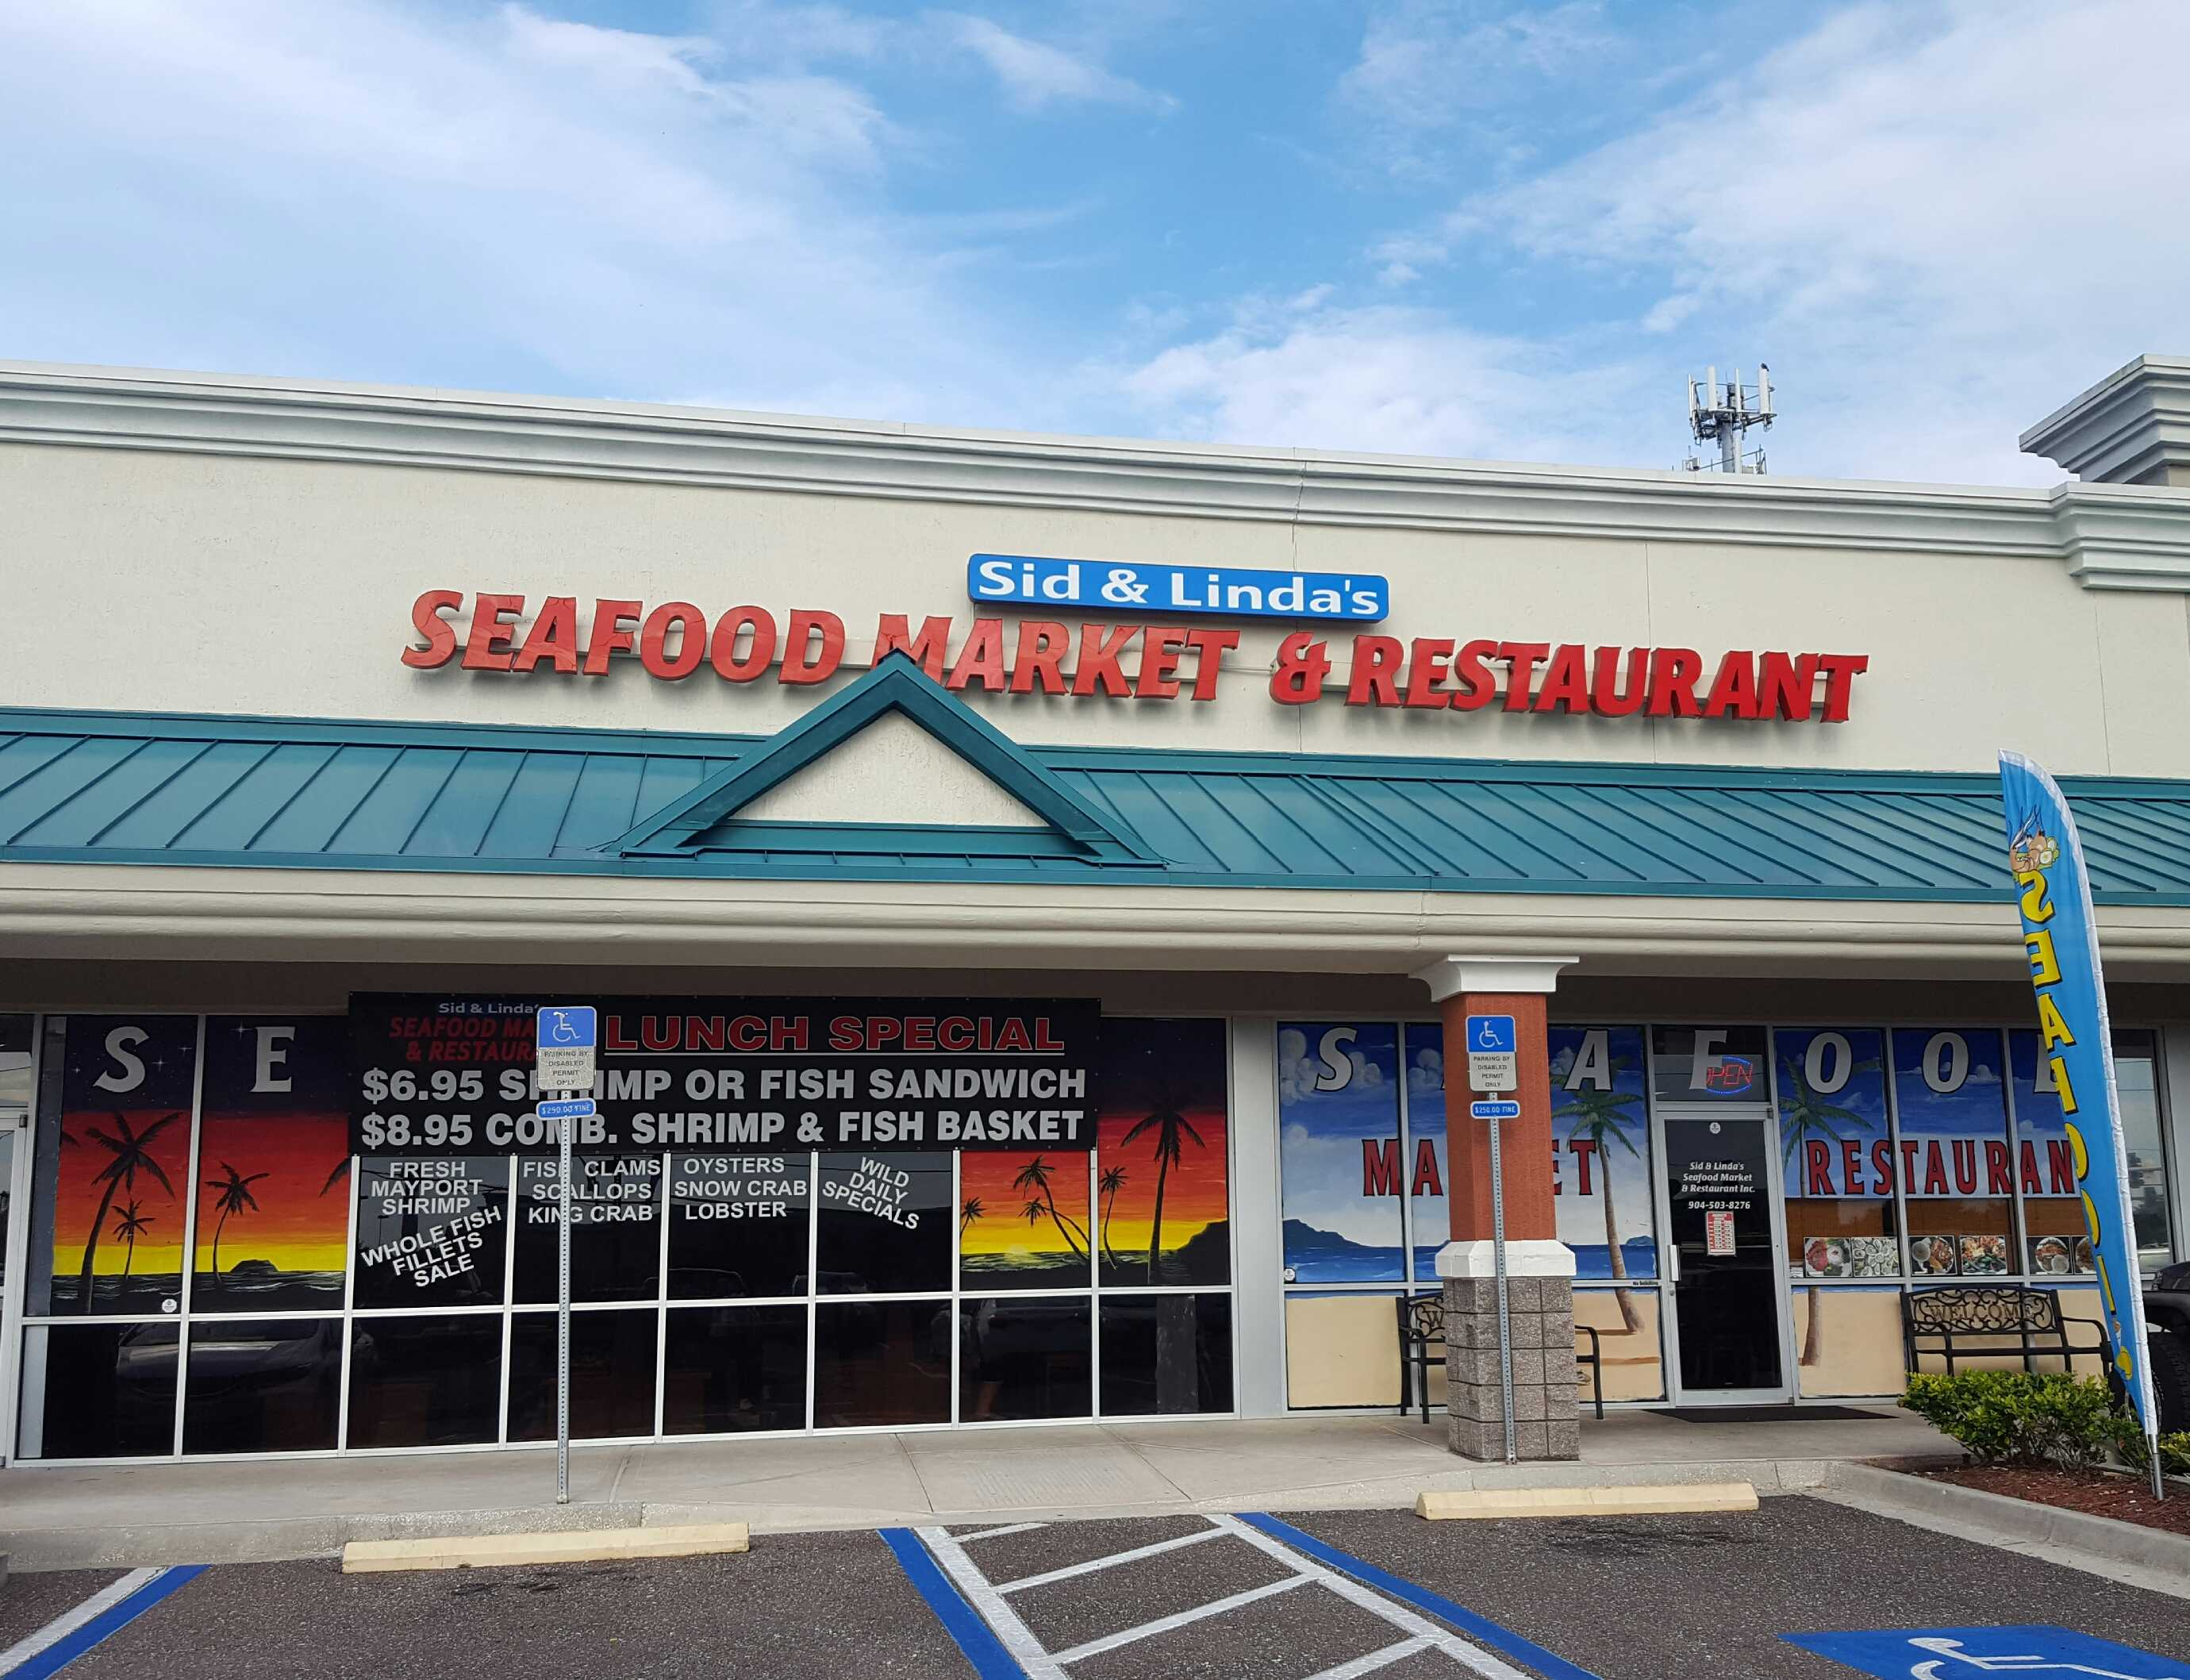 Local Eatery of the Week: Sid and Linda's Seafood Market and Restaurant